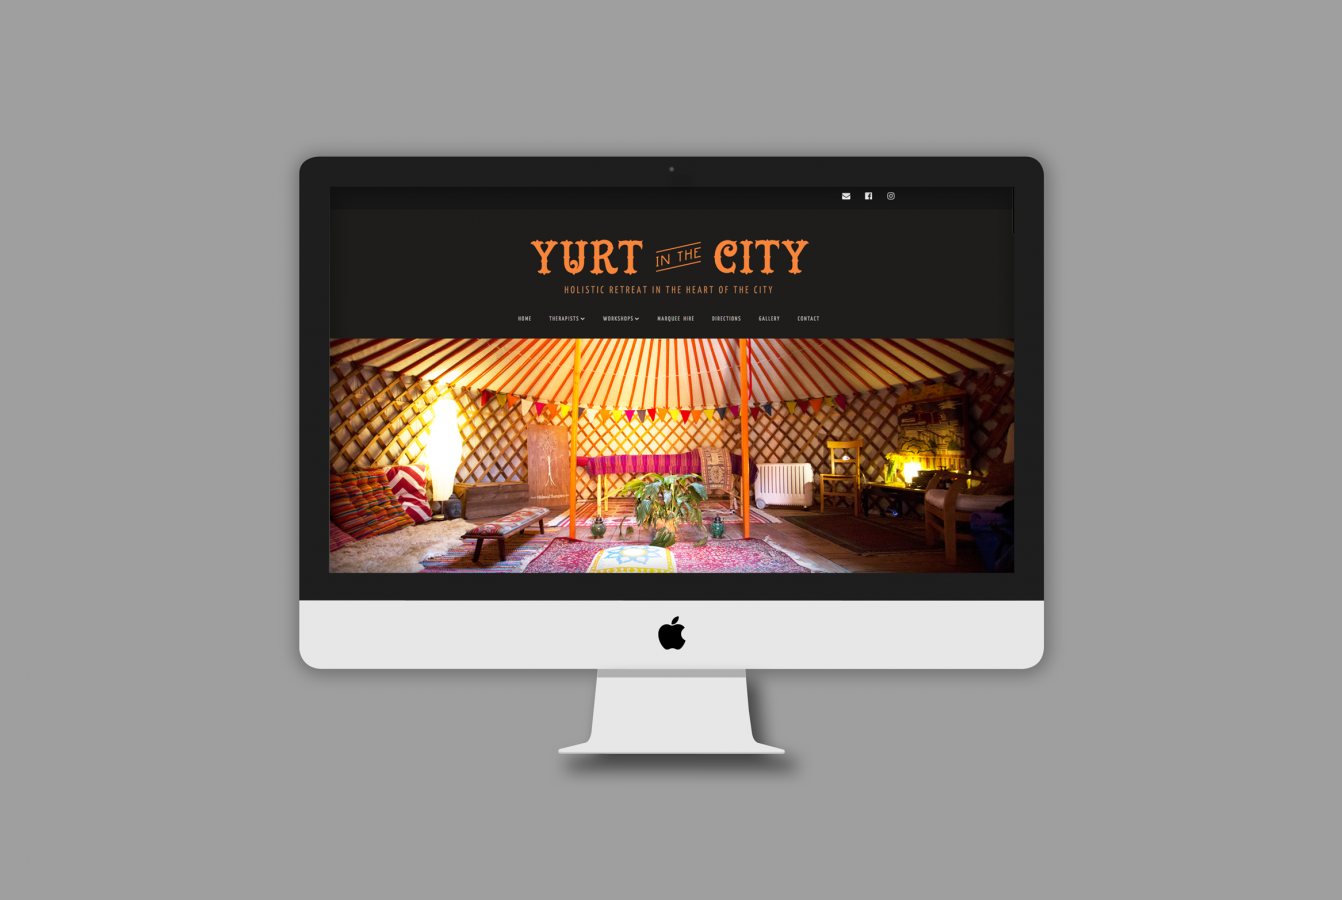 yurt-in-the-city